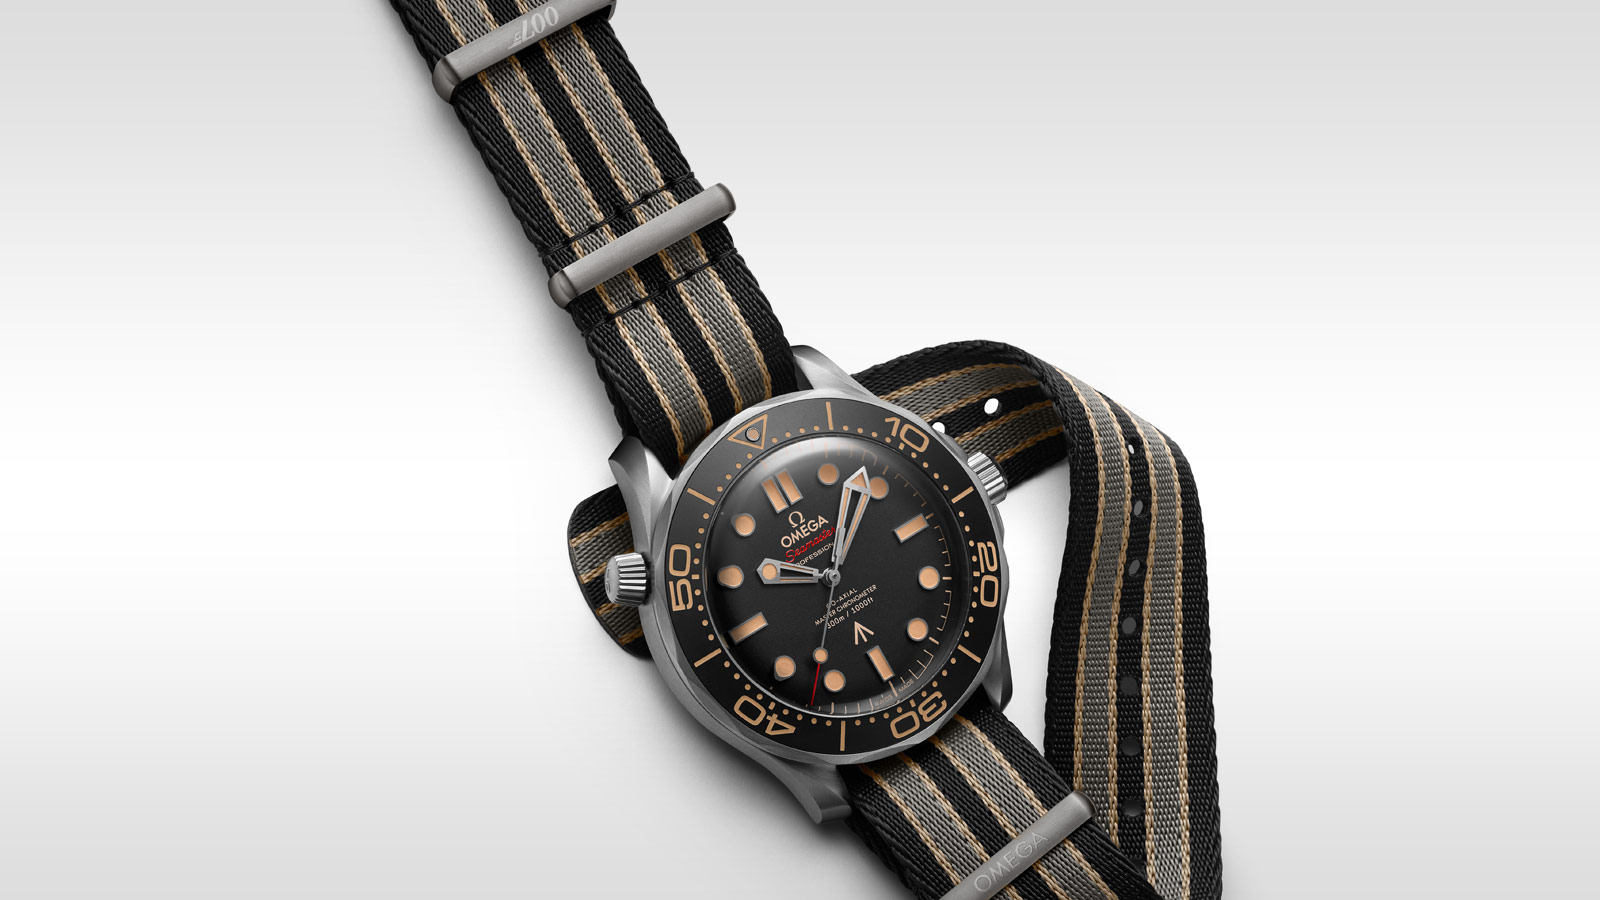 Seamaster Diver 300M Diver 300M Omega Co‑Axial Master Chronometer 42mm - 210.92.42.20.01.001 - Ver 1